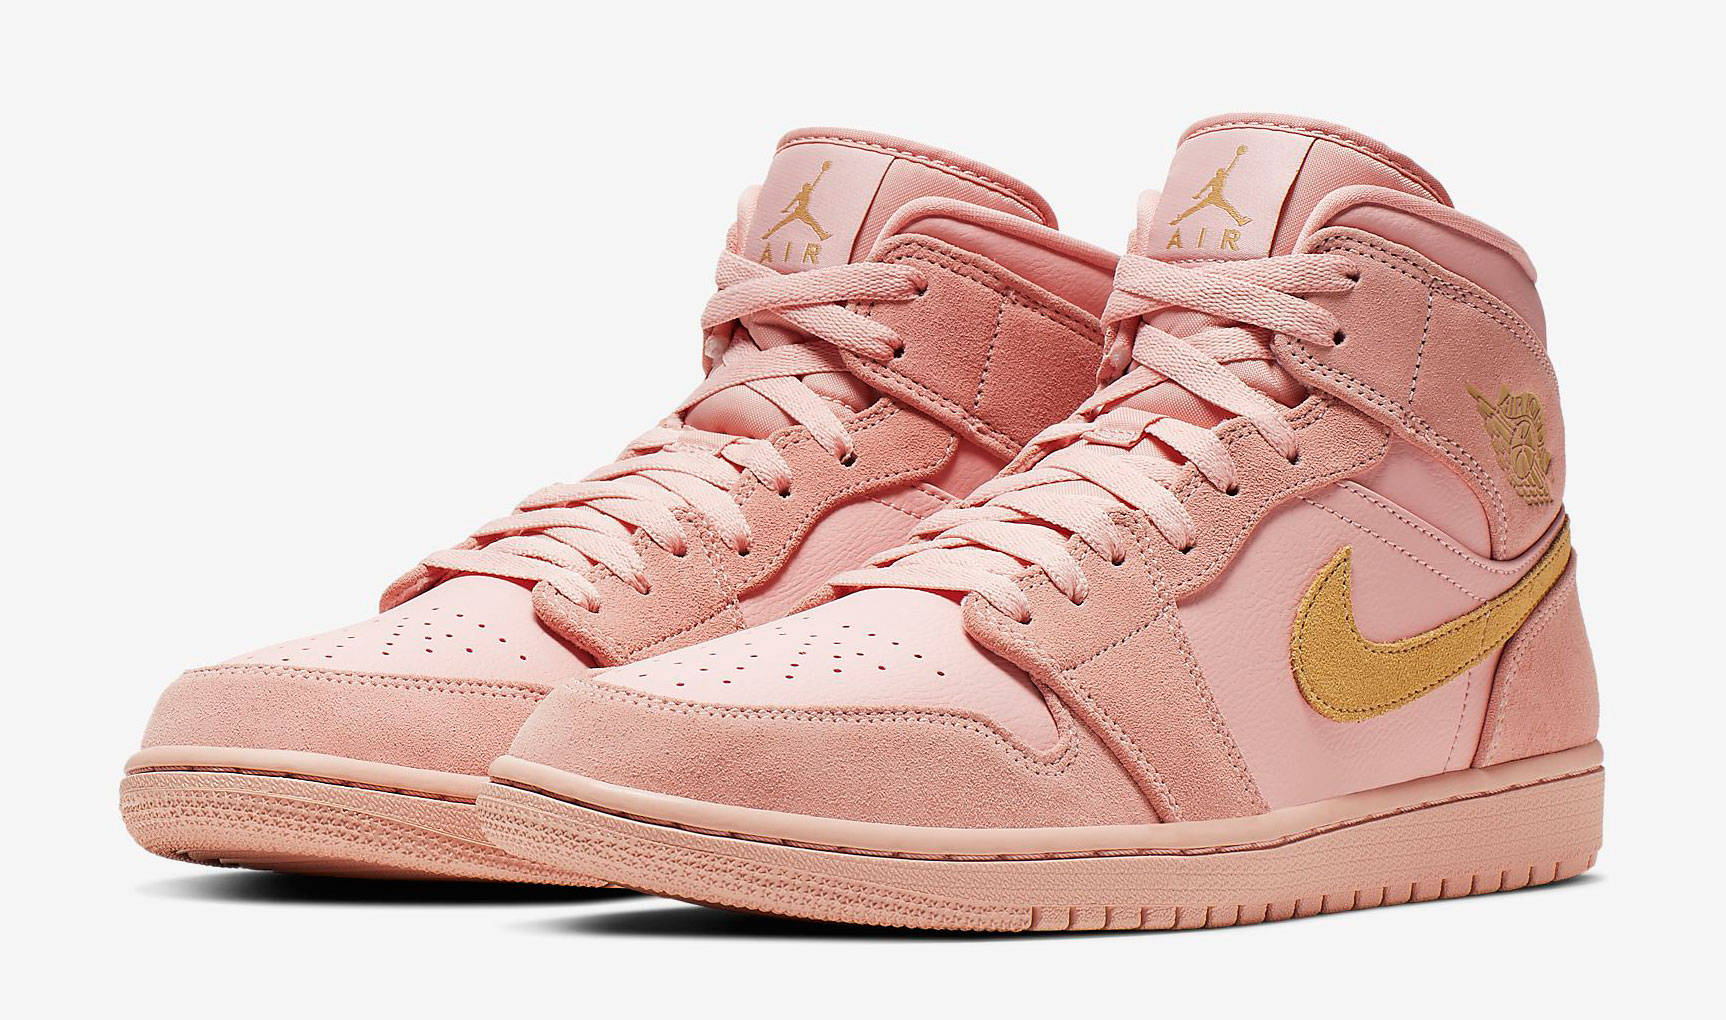 air-jordan-1-mid-coral-stardust-where-to-buy-1